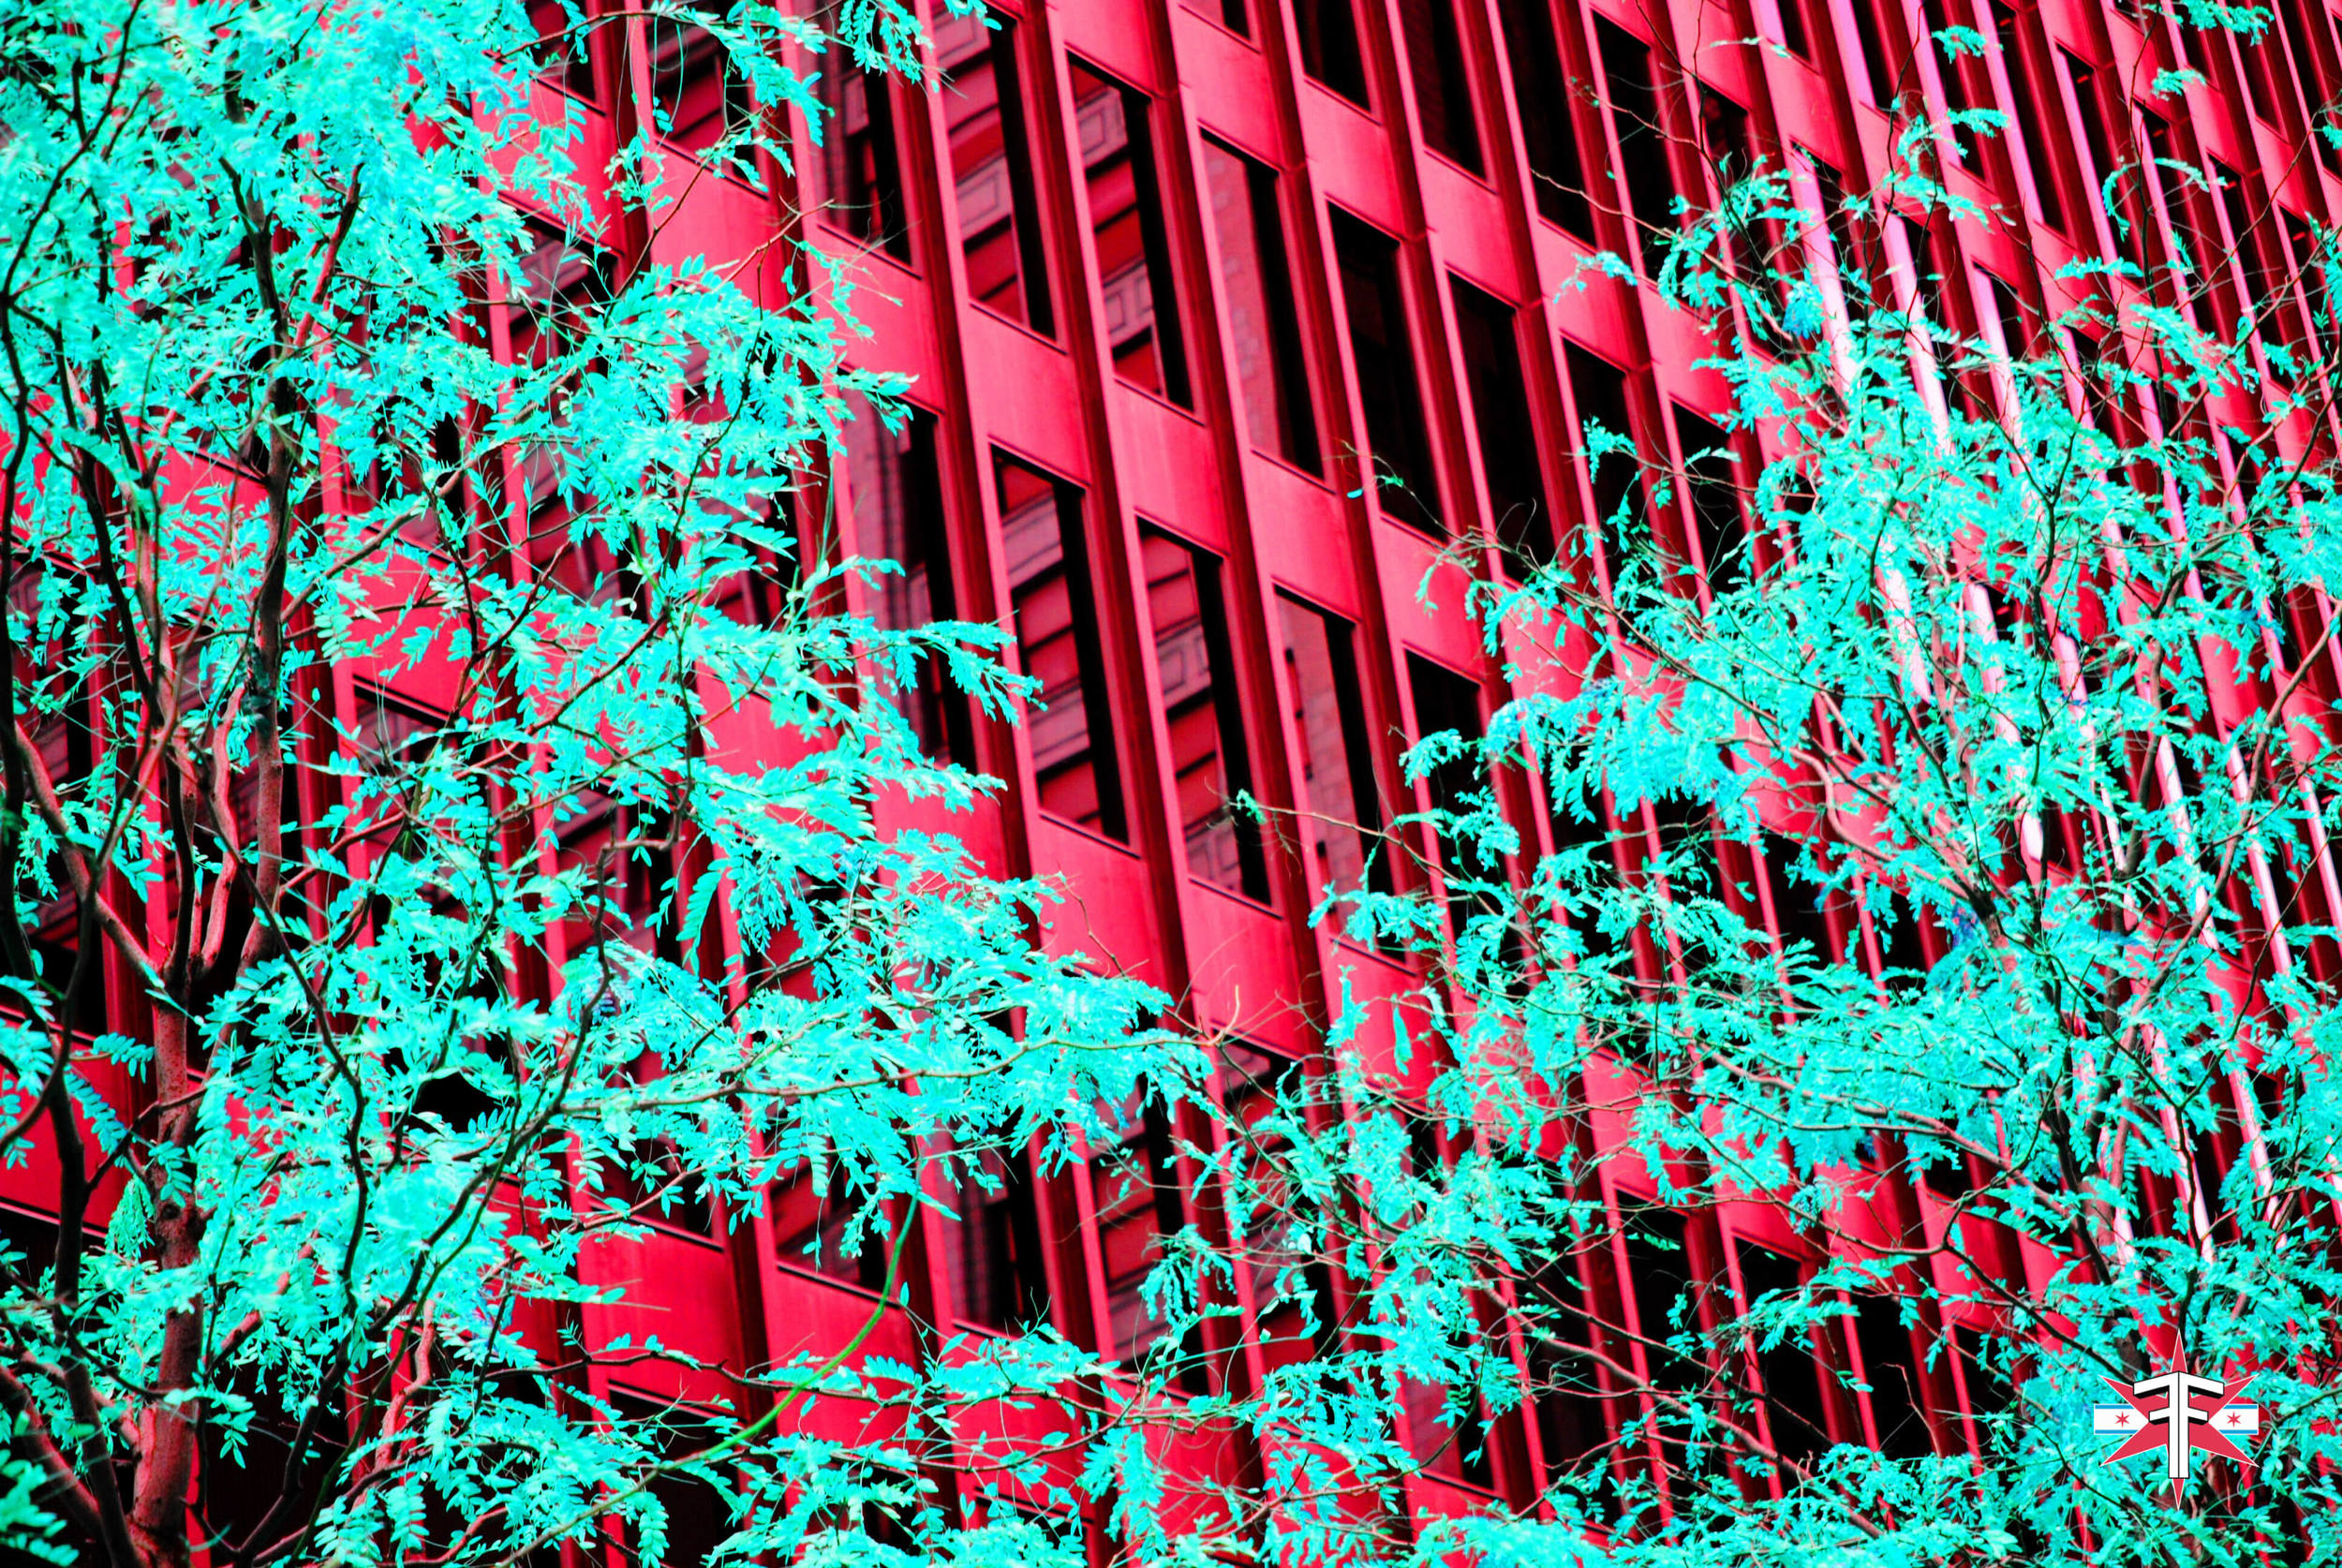 chicago art abstract eric formato photography color travel cityscape architecture saturated citycapes bright vibrant artistic-59.jpg